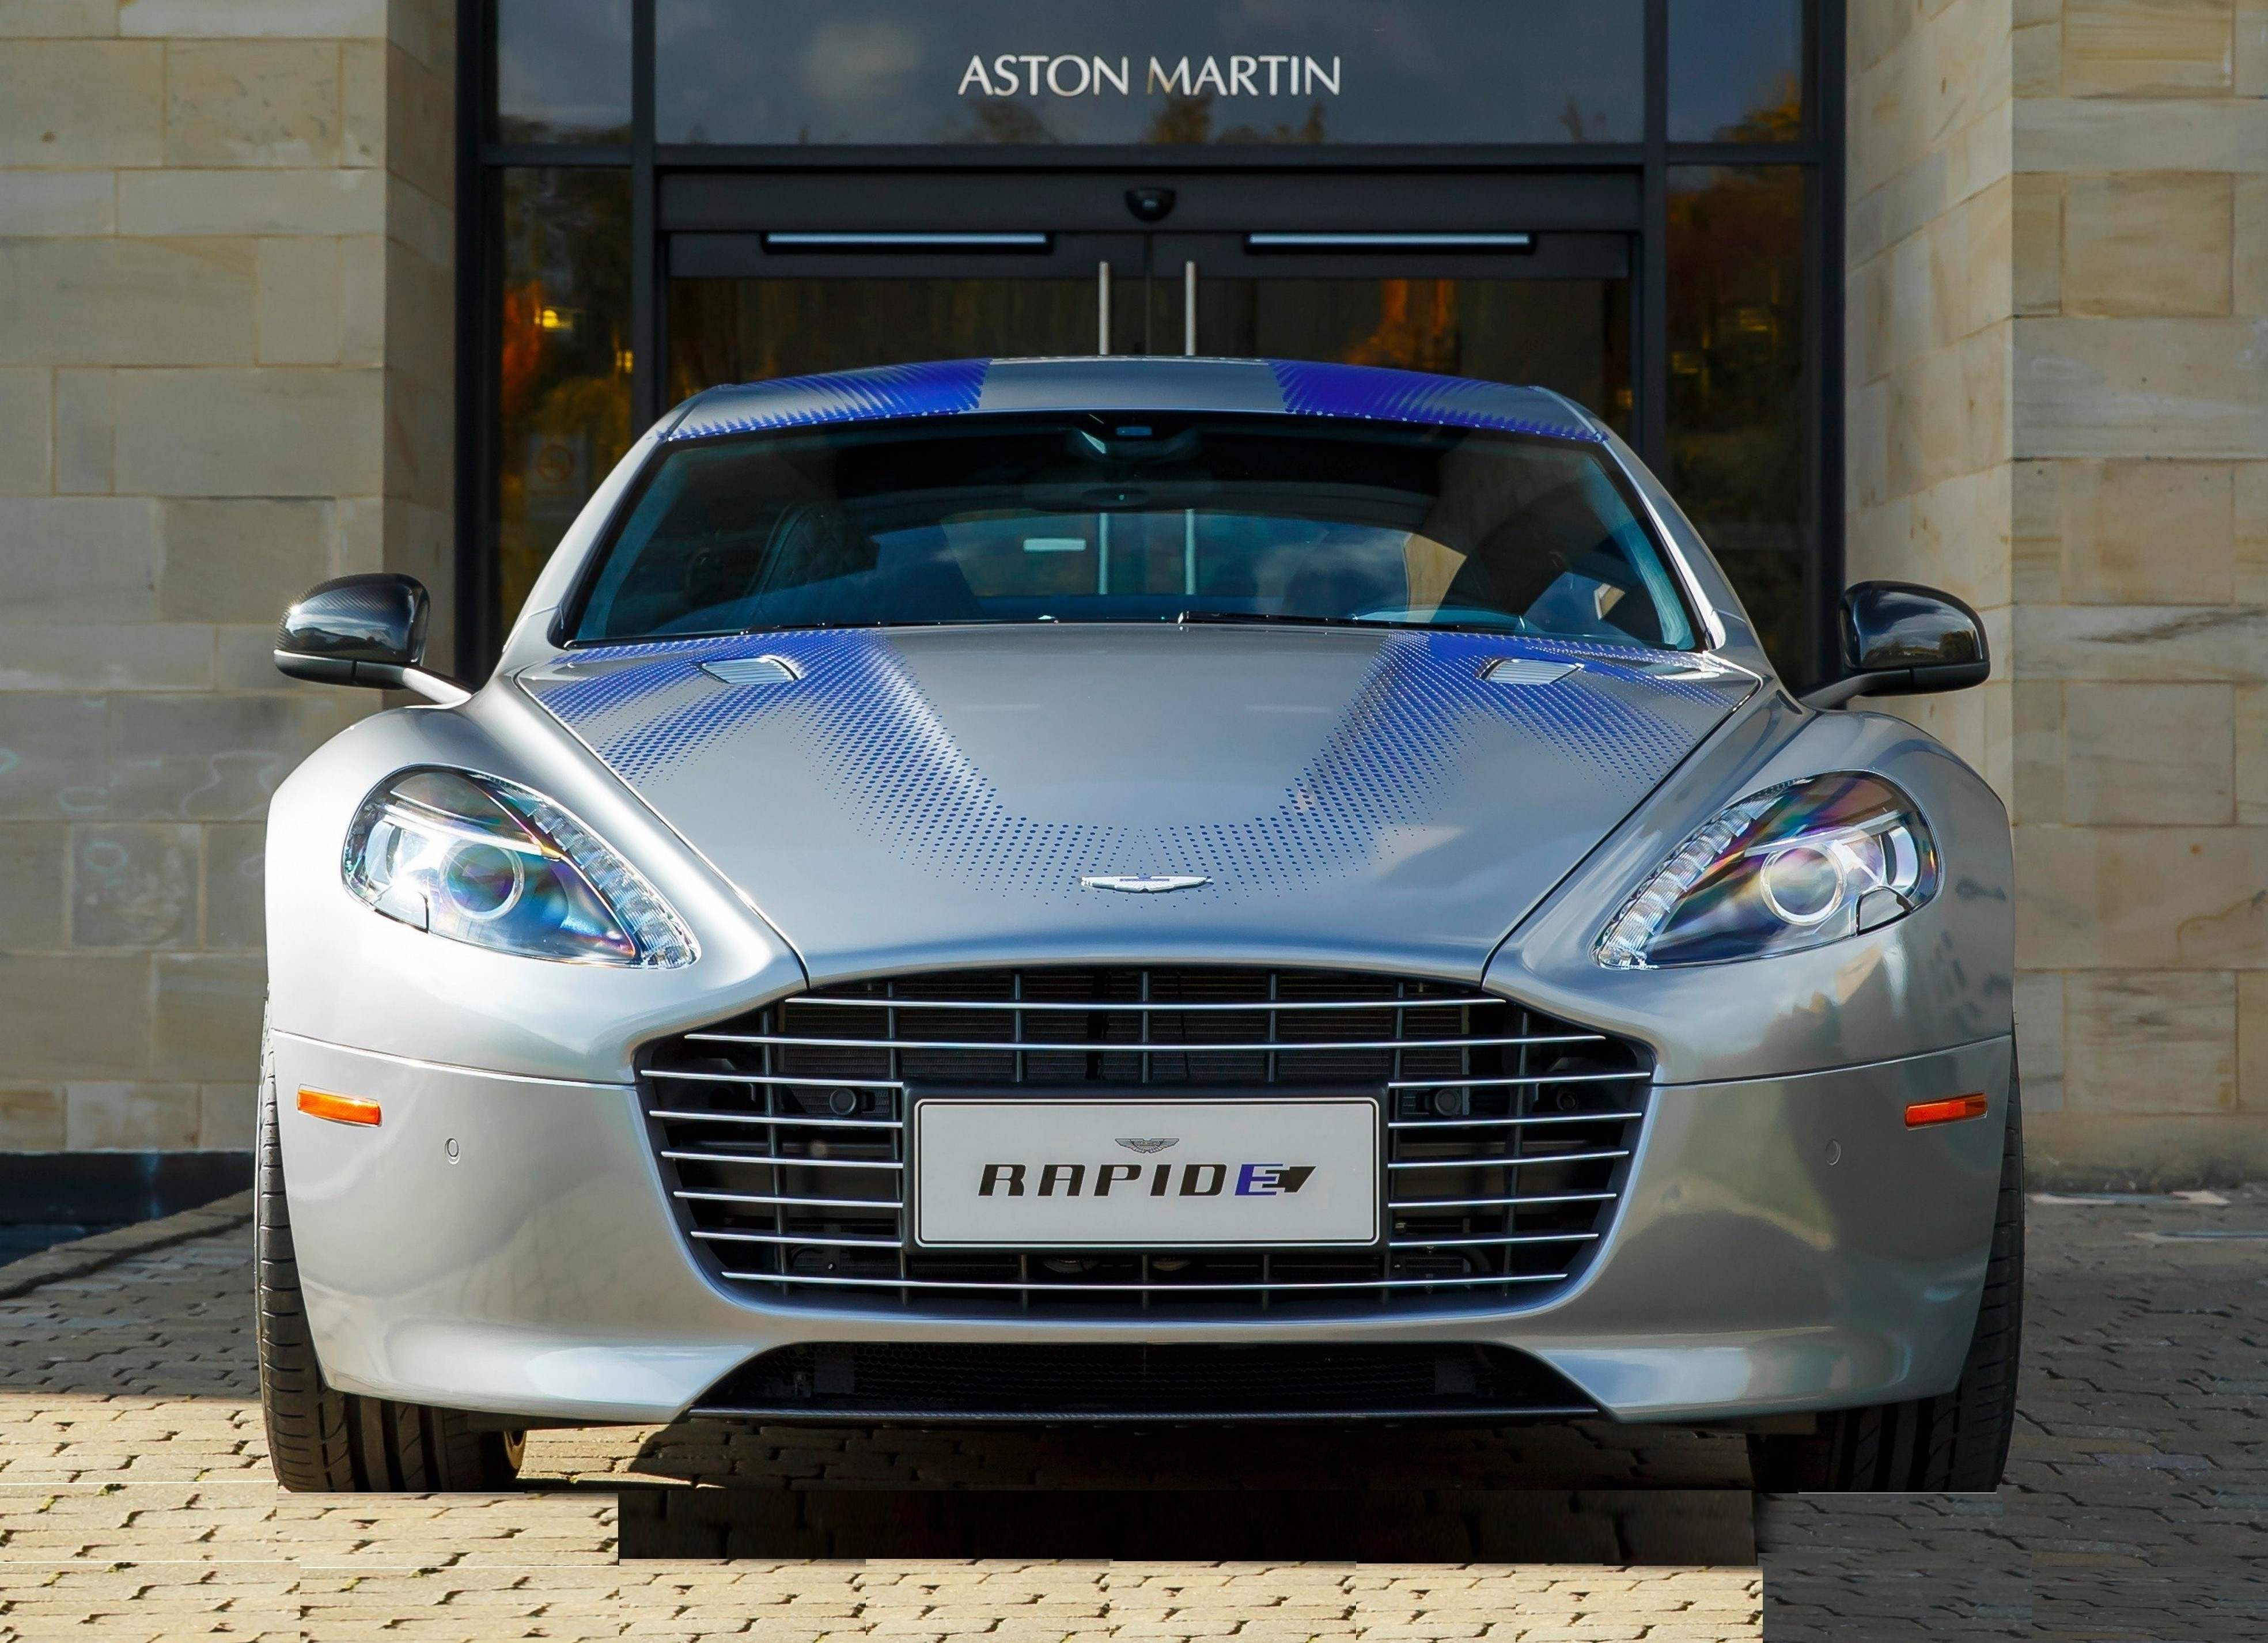 Your Resolution: 1024x1024. Resolutions: PC Mac Android IOS Custom. Author: Aston  Martin